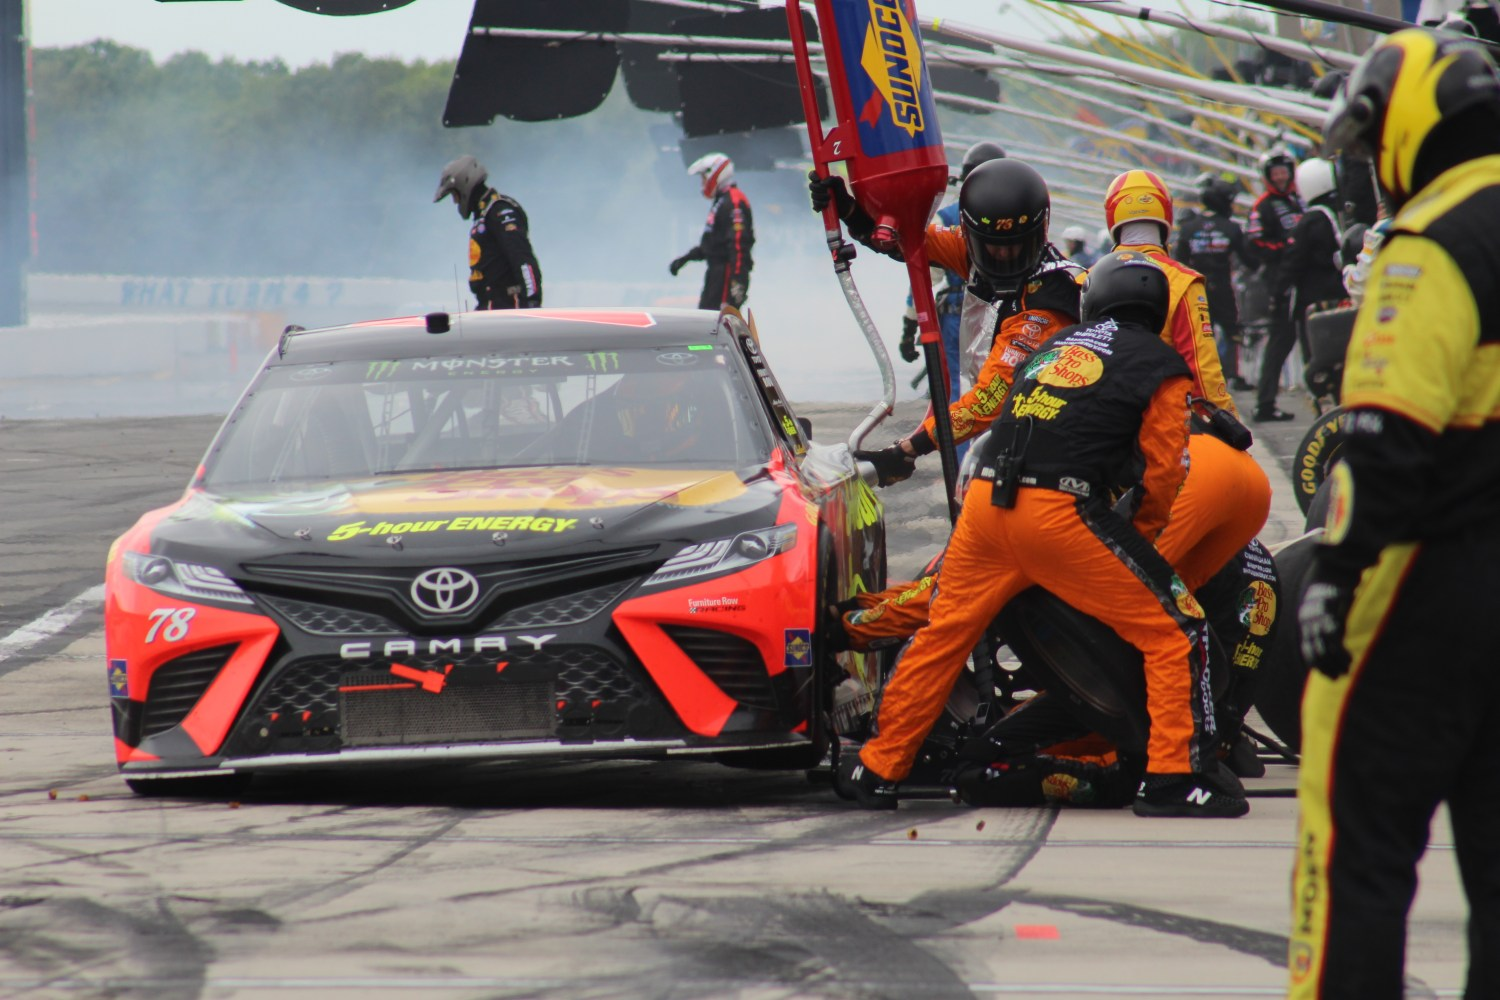 The No. 78 gets service during a pit stop at Pocono.